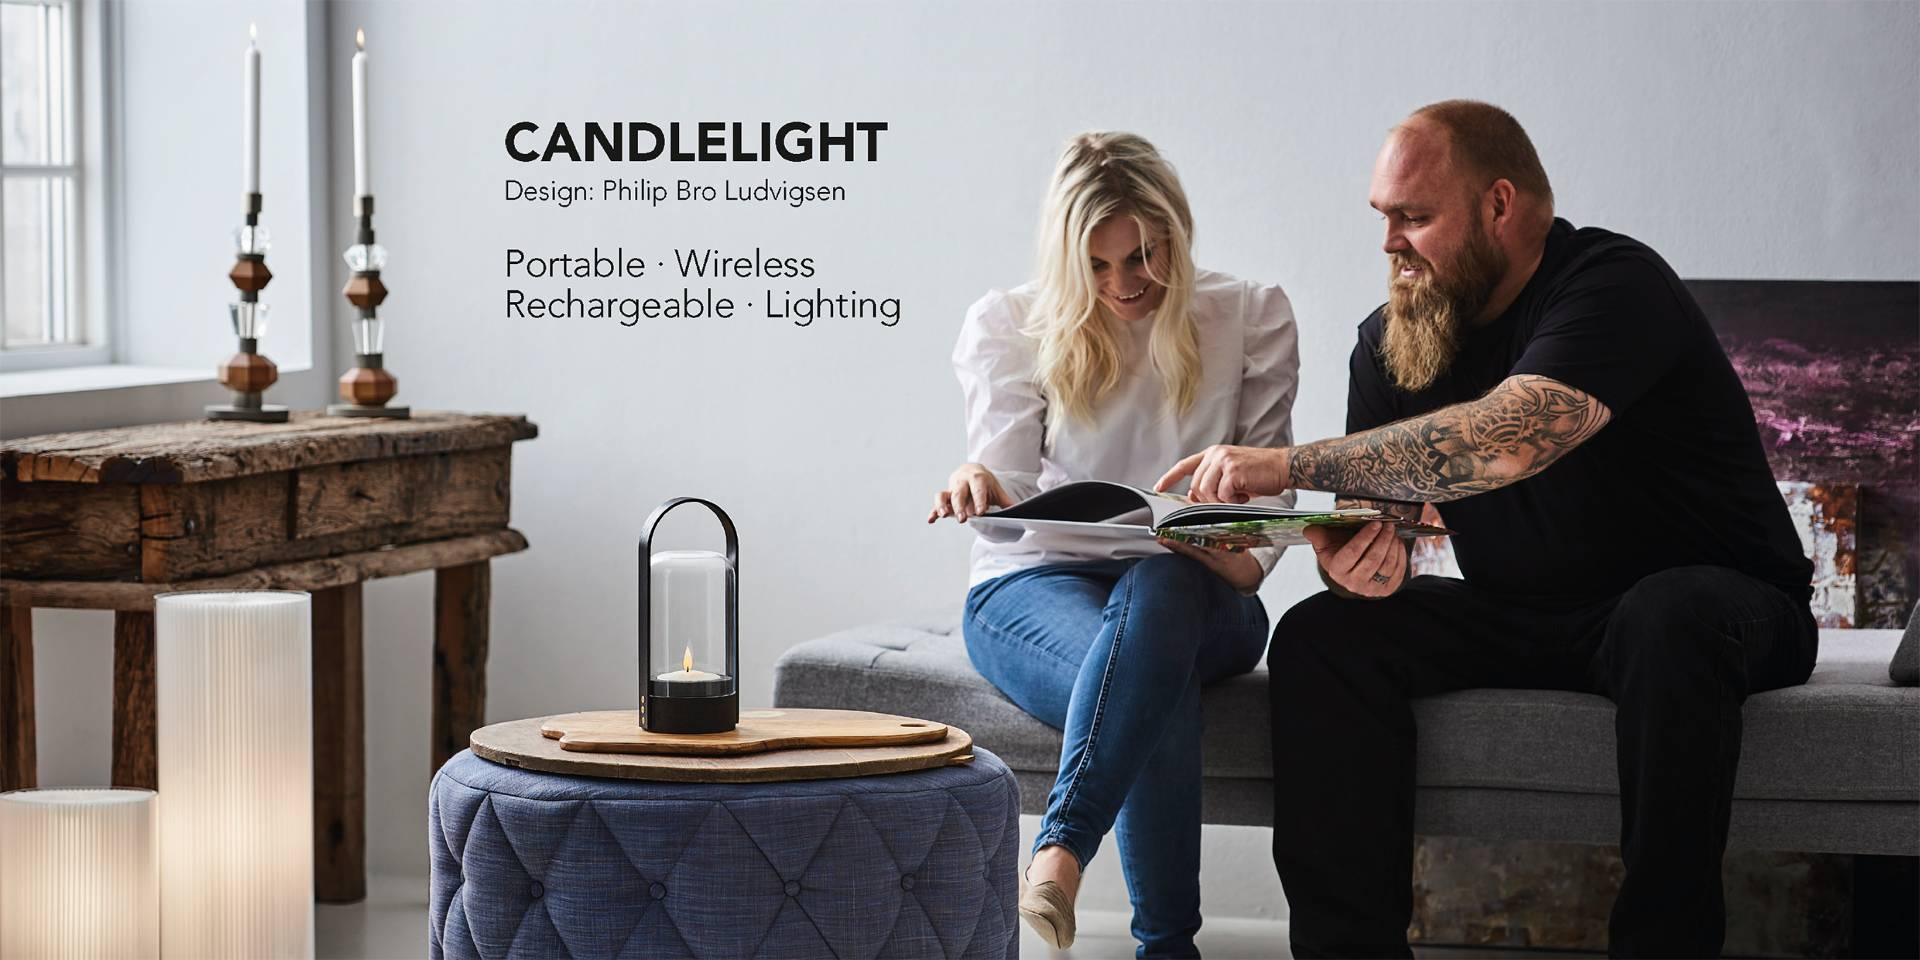 Introducing: CANDLELIGHT